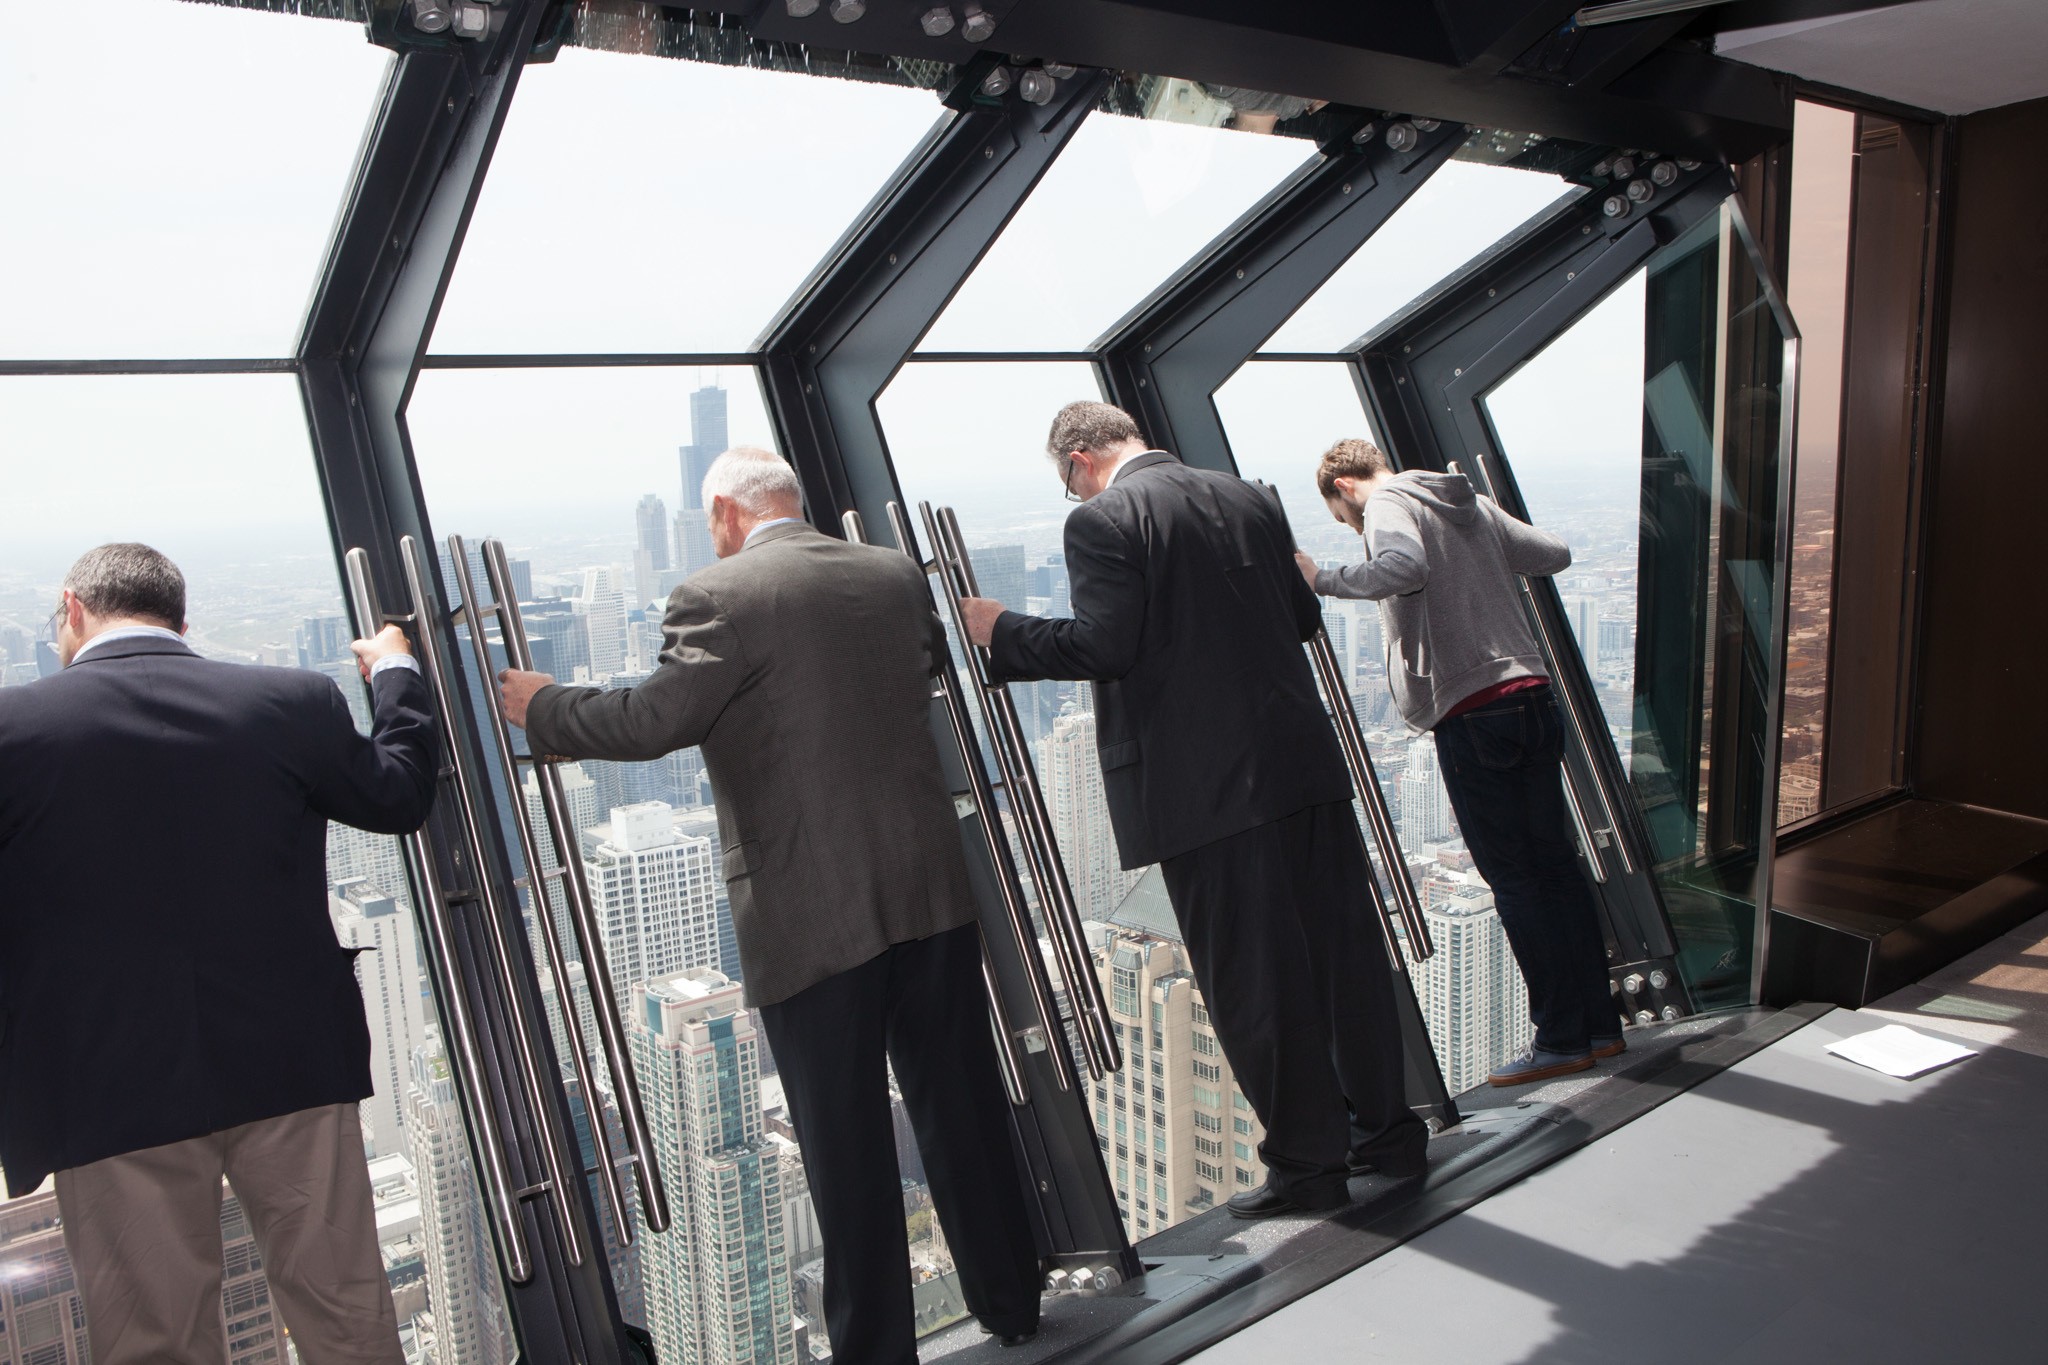 Tilt gives visitors a unique view of the city from the top of the John Hancock Center.